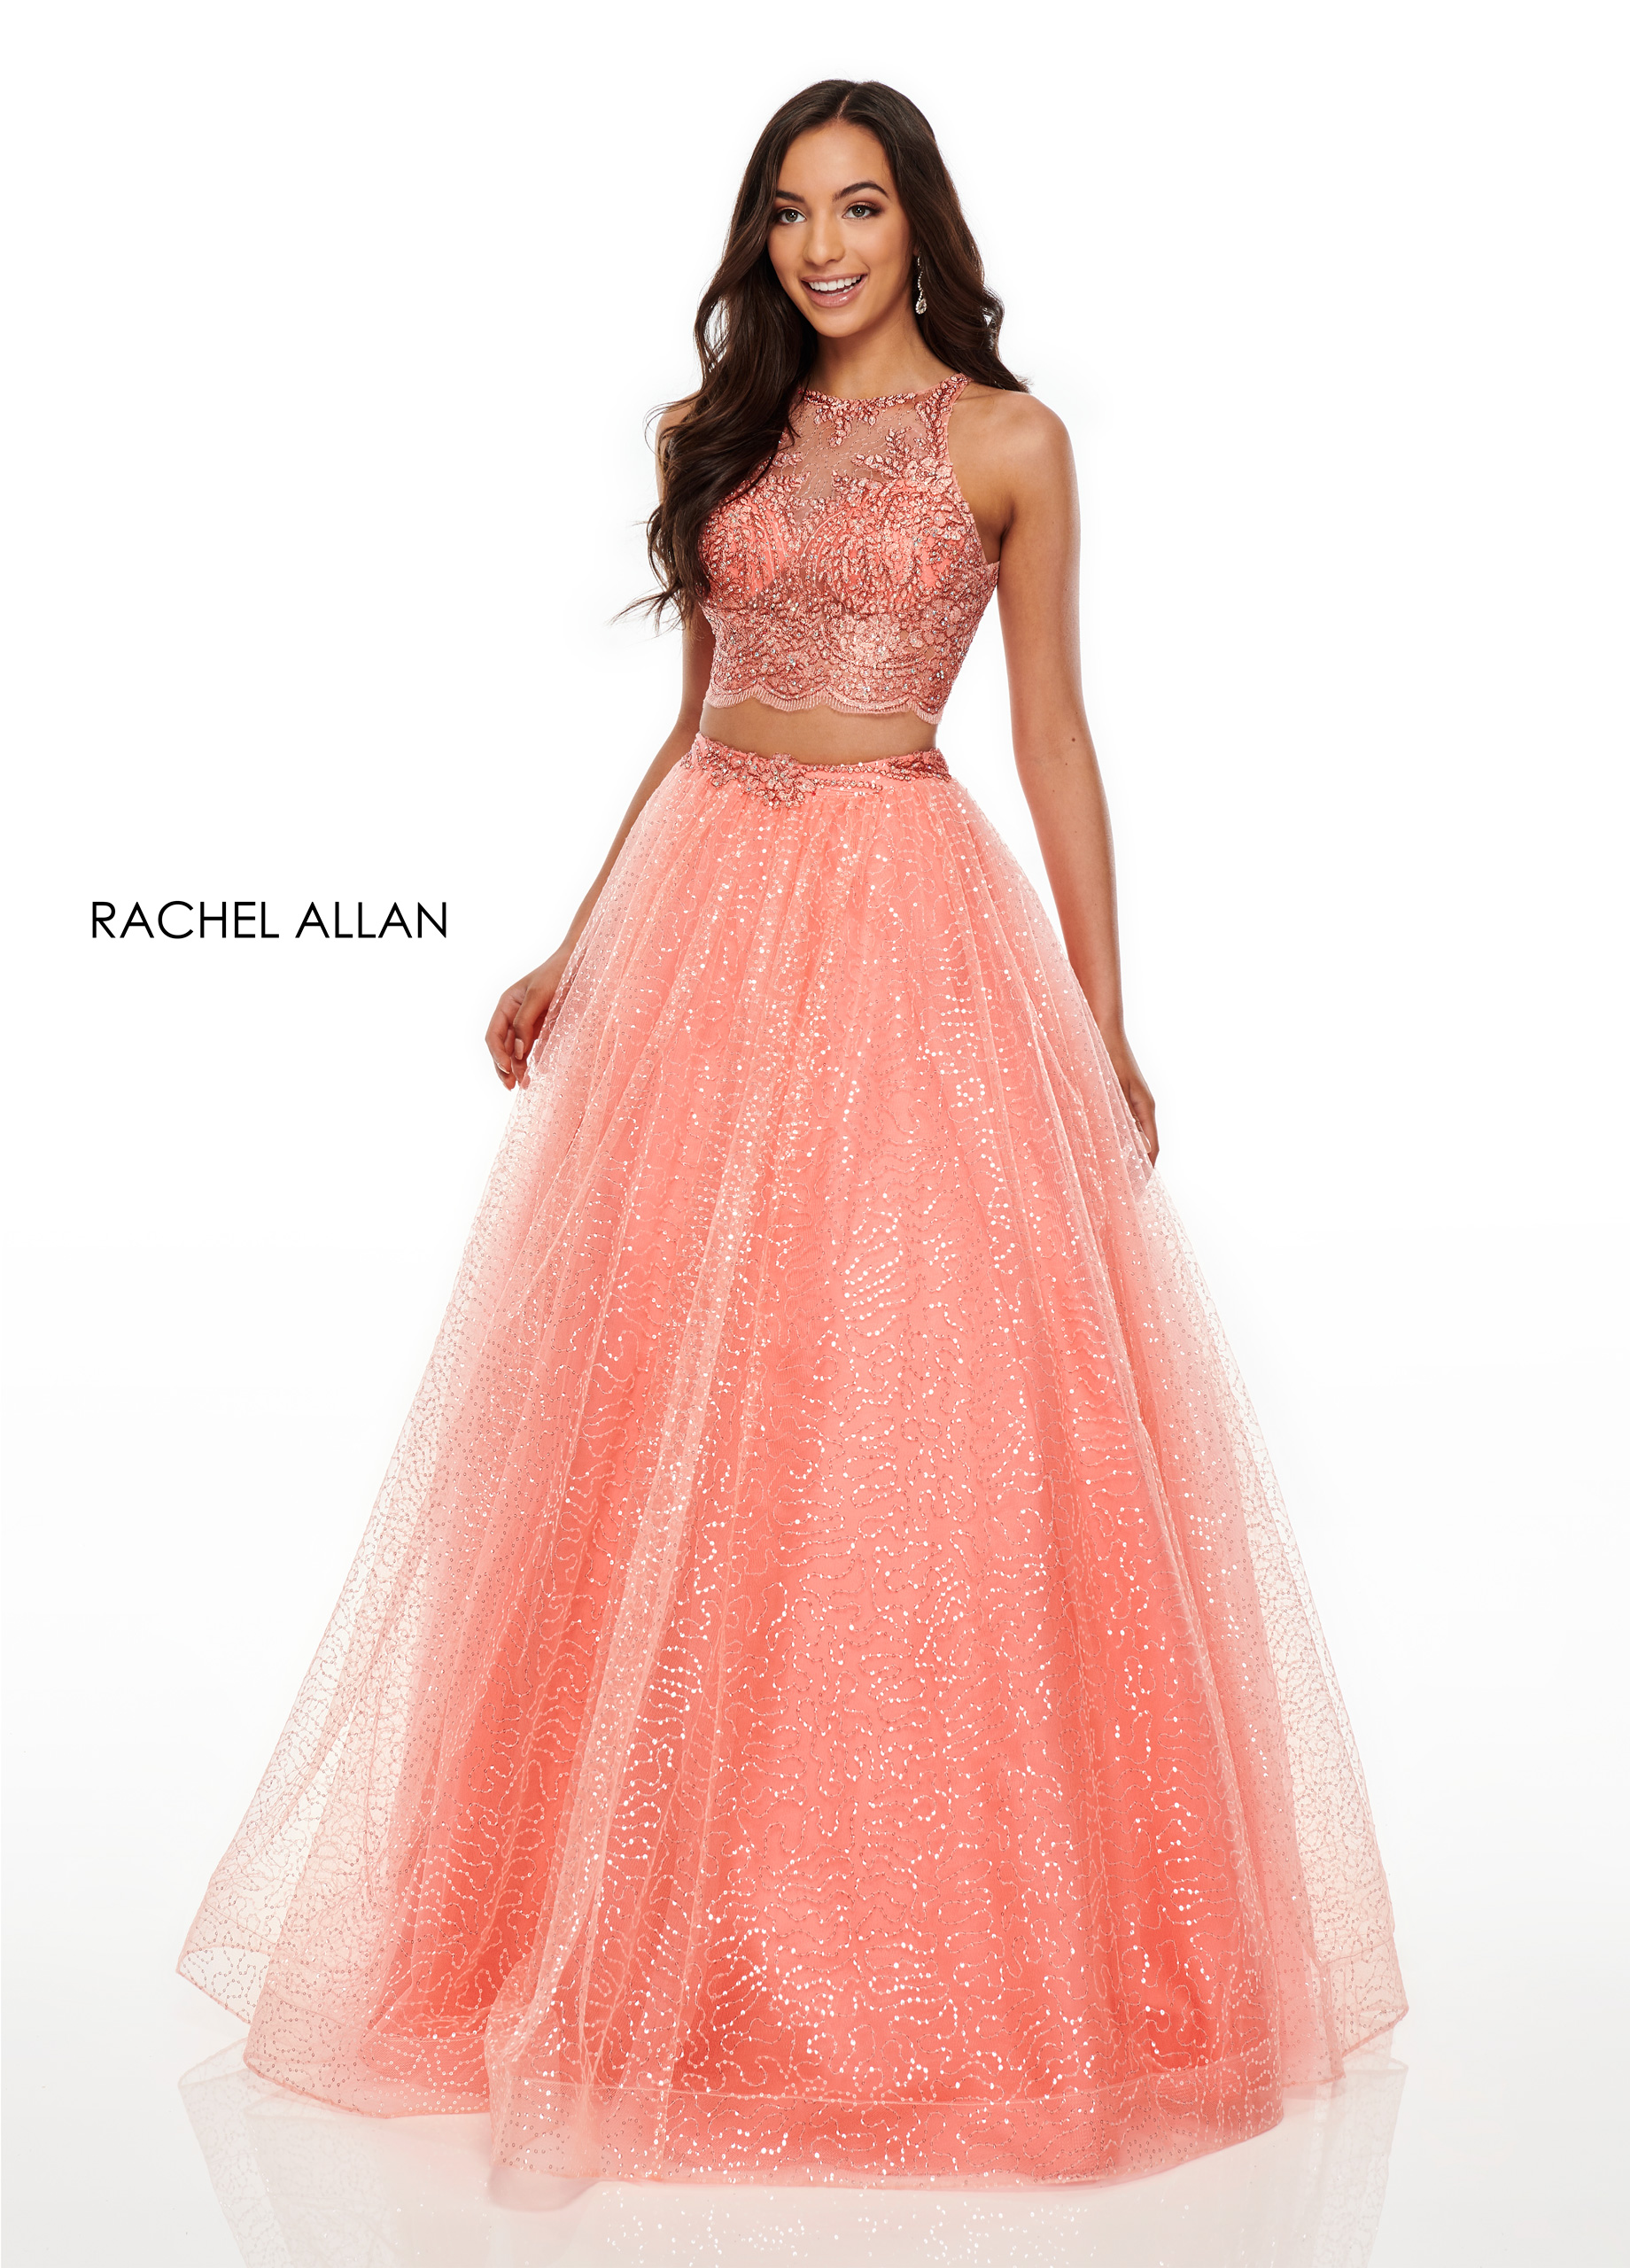 High Neckline Ball Gowns Prom Dresses in Coral Color